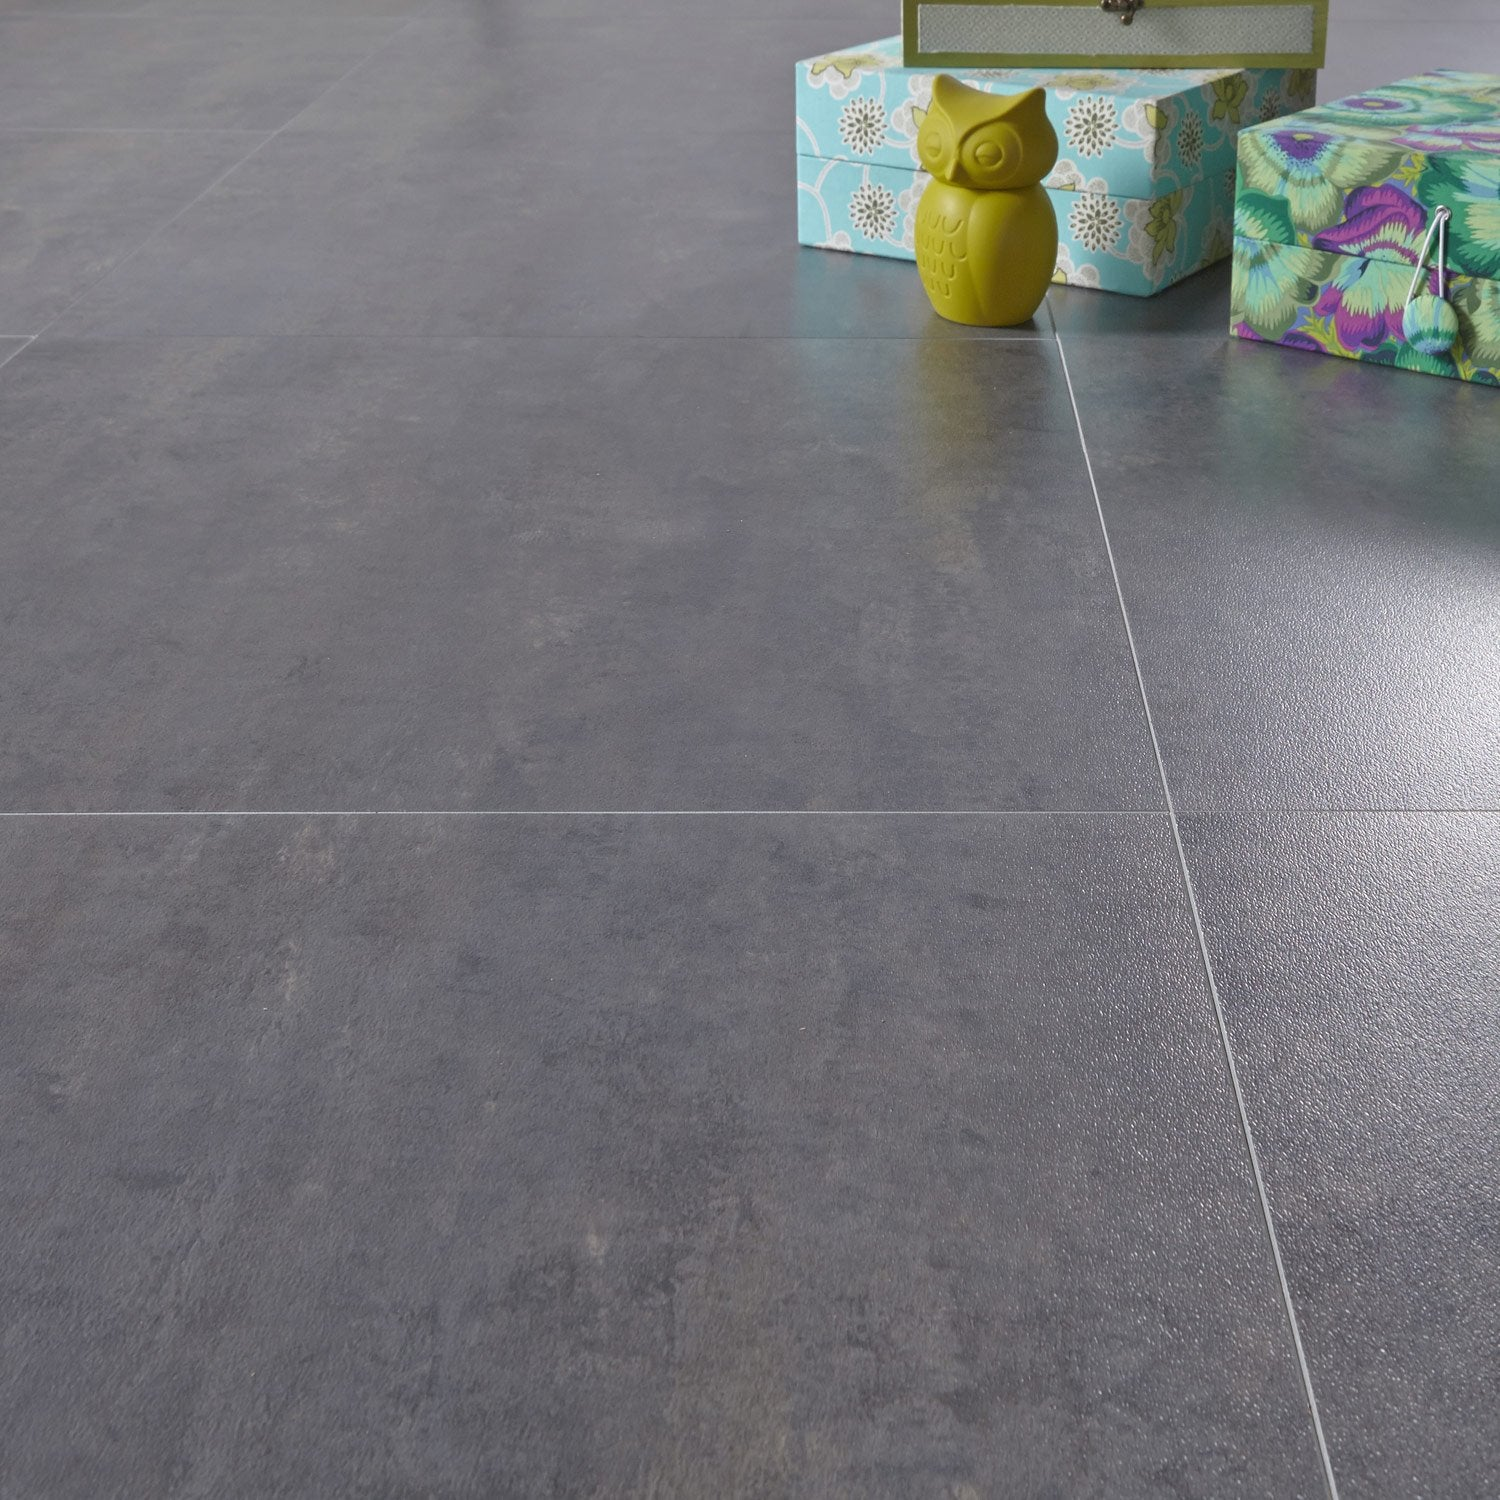 Dalle pvc adh sive gerflor caractere distinctive sugar 60 - Dalle clipsable leroy merlin ...